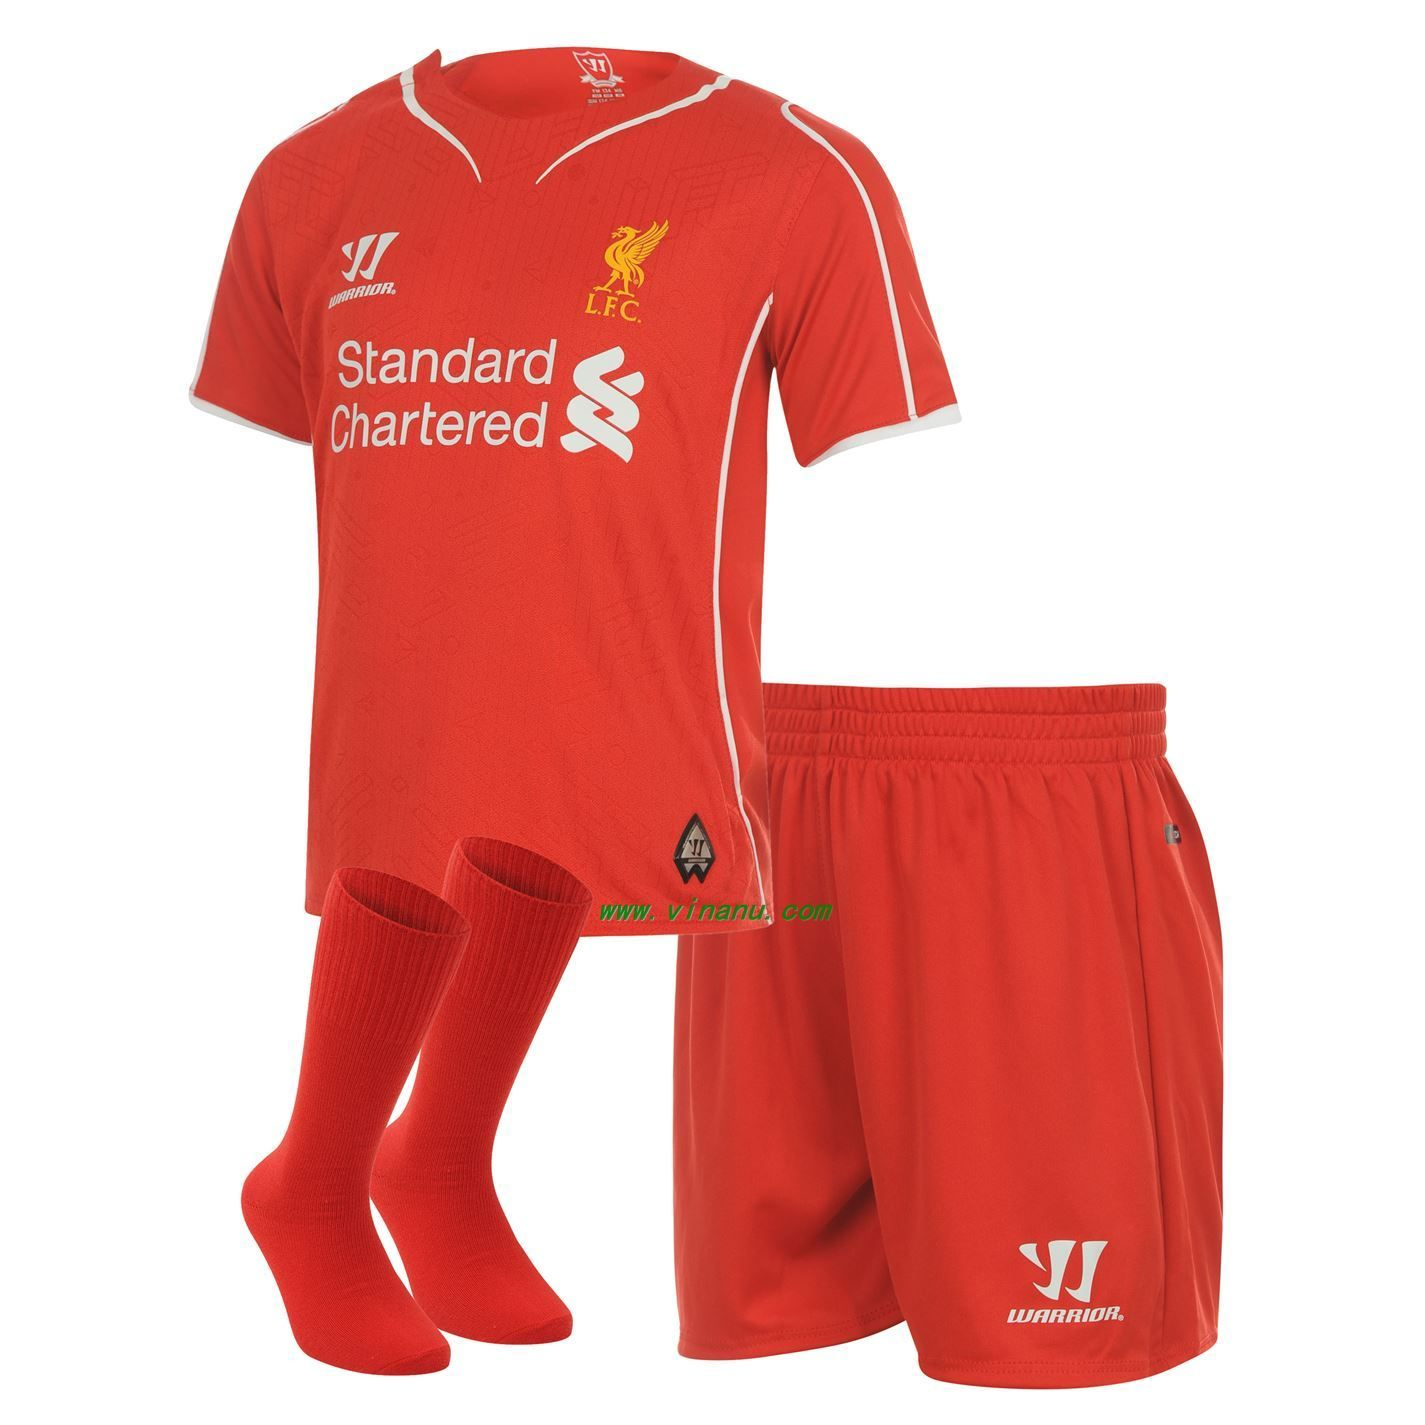 7dd71dbbca5 14 15 Liverpool soccer kit from Liverpool